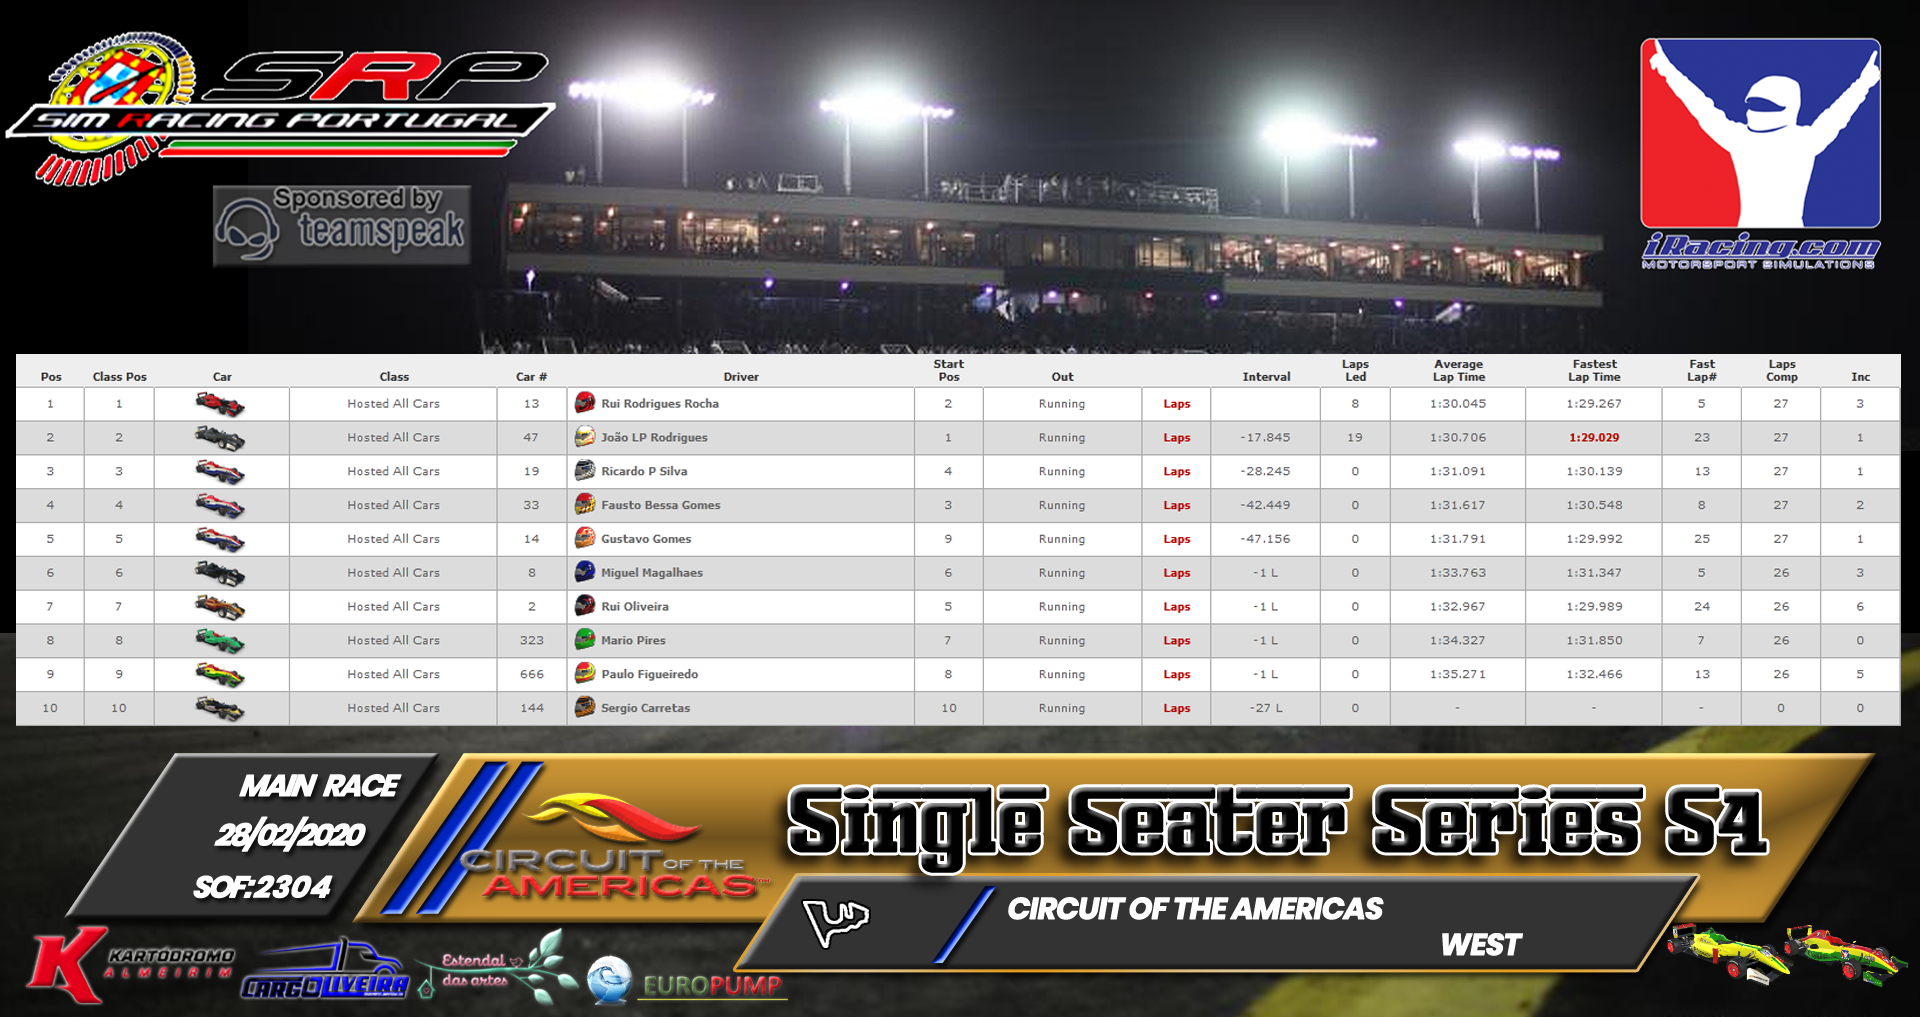 [Image: RaceResults2020M-2.png]